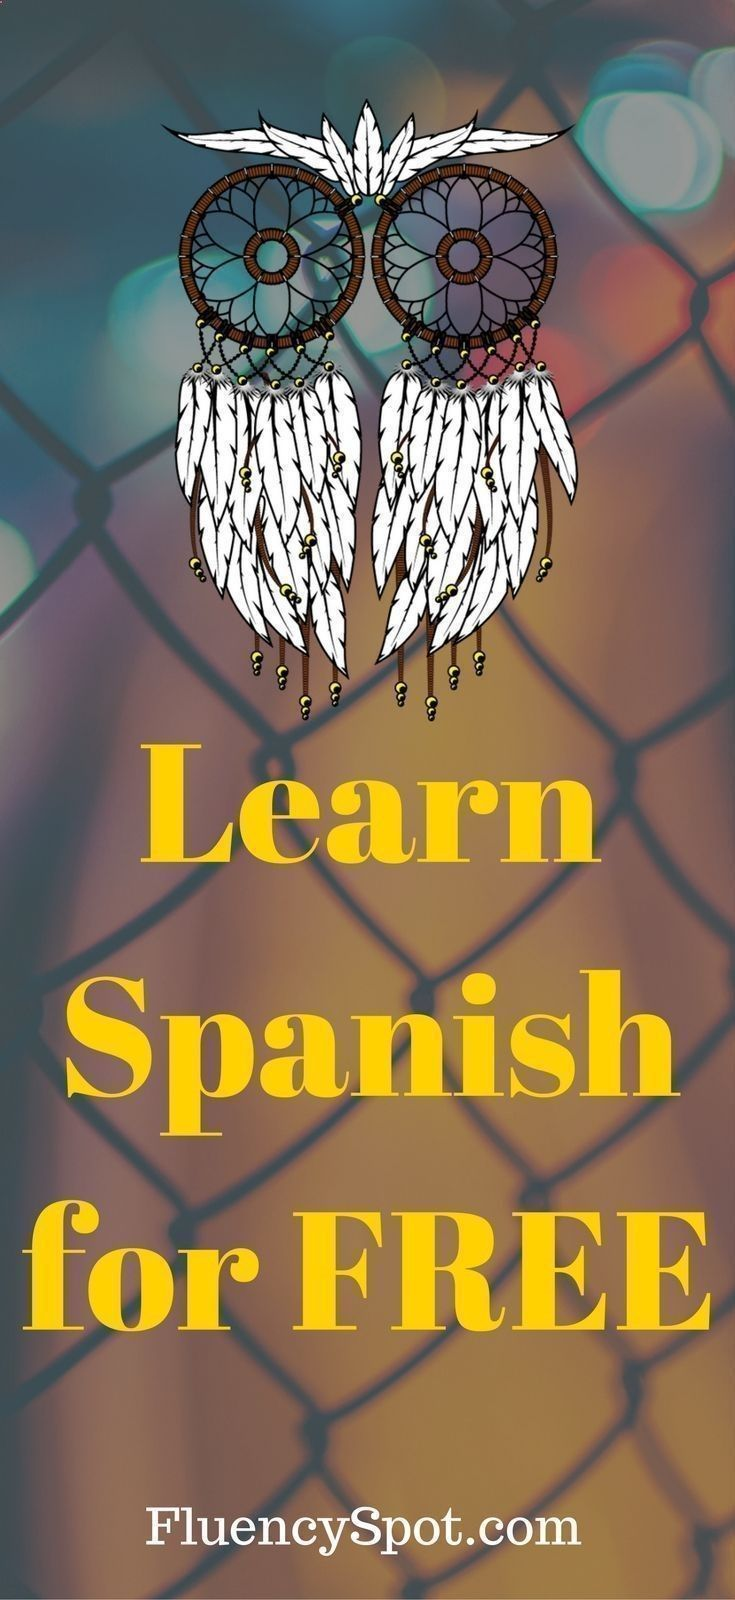 So how to learn Spanish? In this post you can find the answer to this question. And you can learn it for free. More tips on how to learn Spanish. learn spanish | learn spanish for adults | learn spanish for kids | learn spanish free | learn spanish fast | Learn Spanish | Learn Spanish Today | Learn Spanish Free Online #learnspanishforadults #learnspanishforadultstips #learnspanishforadultsfree